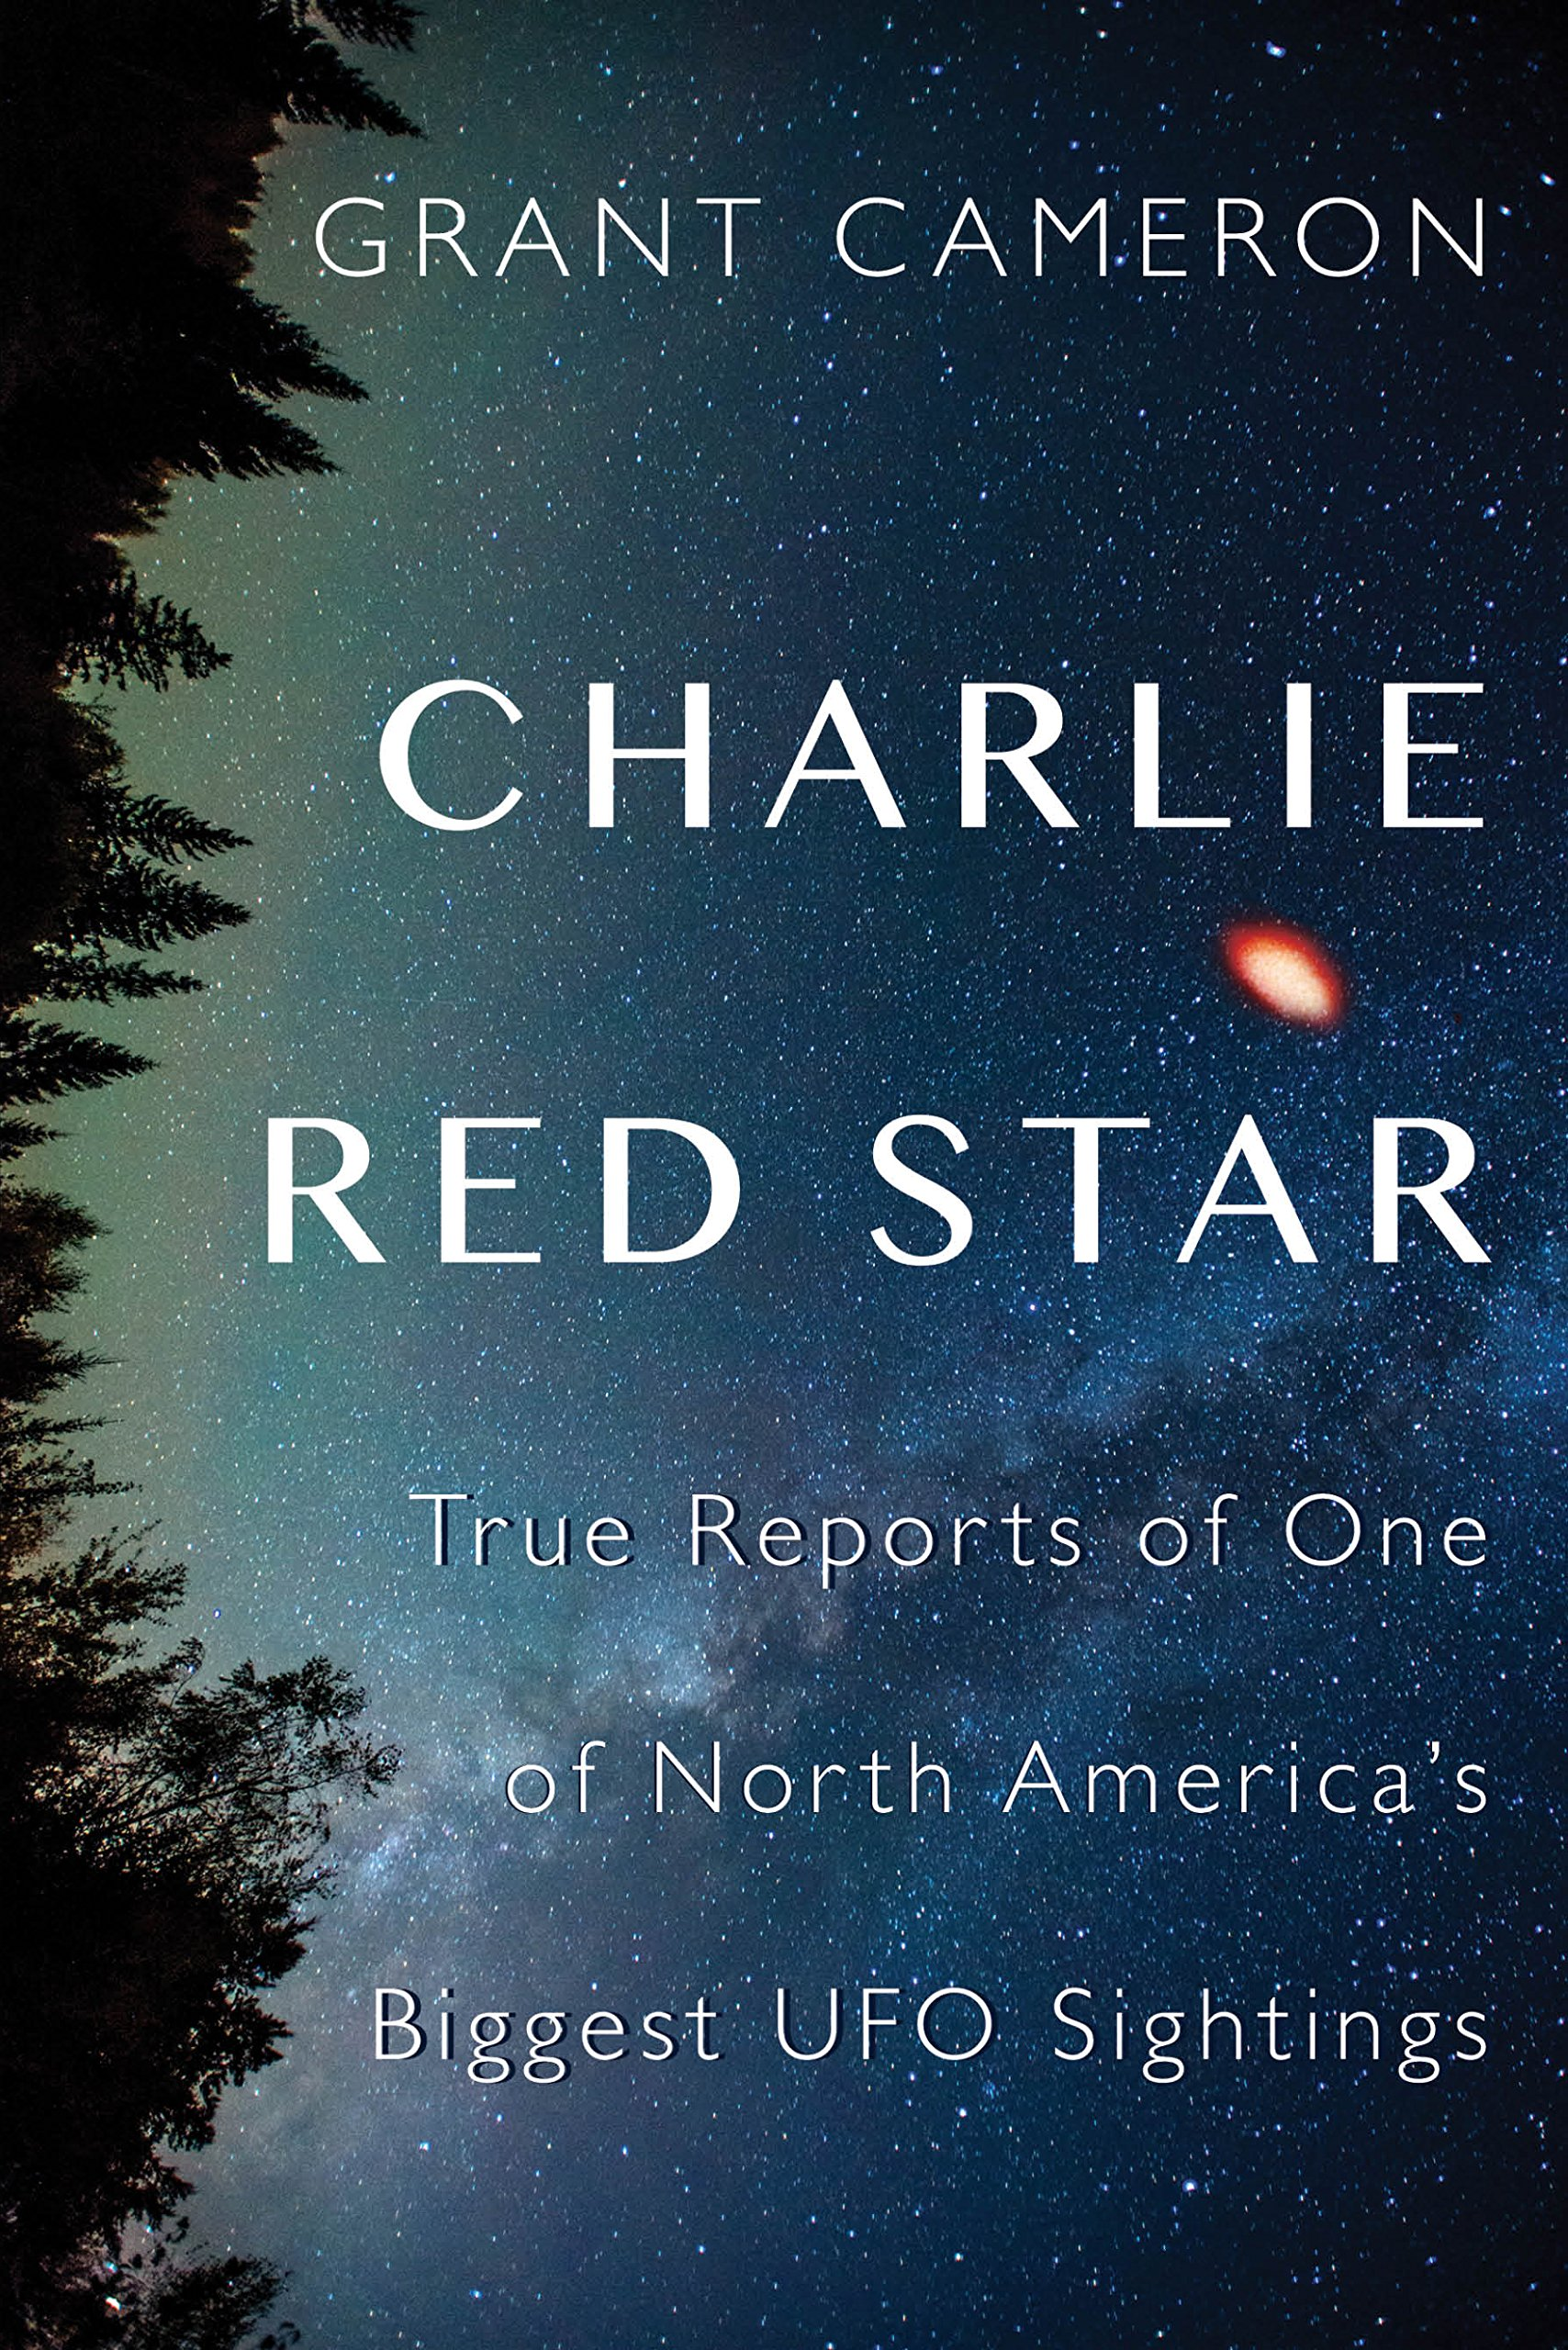 CharlieRedStar bookcover GrantCameron